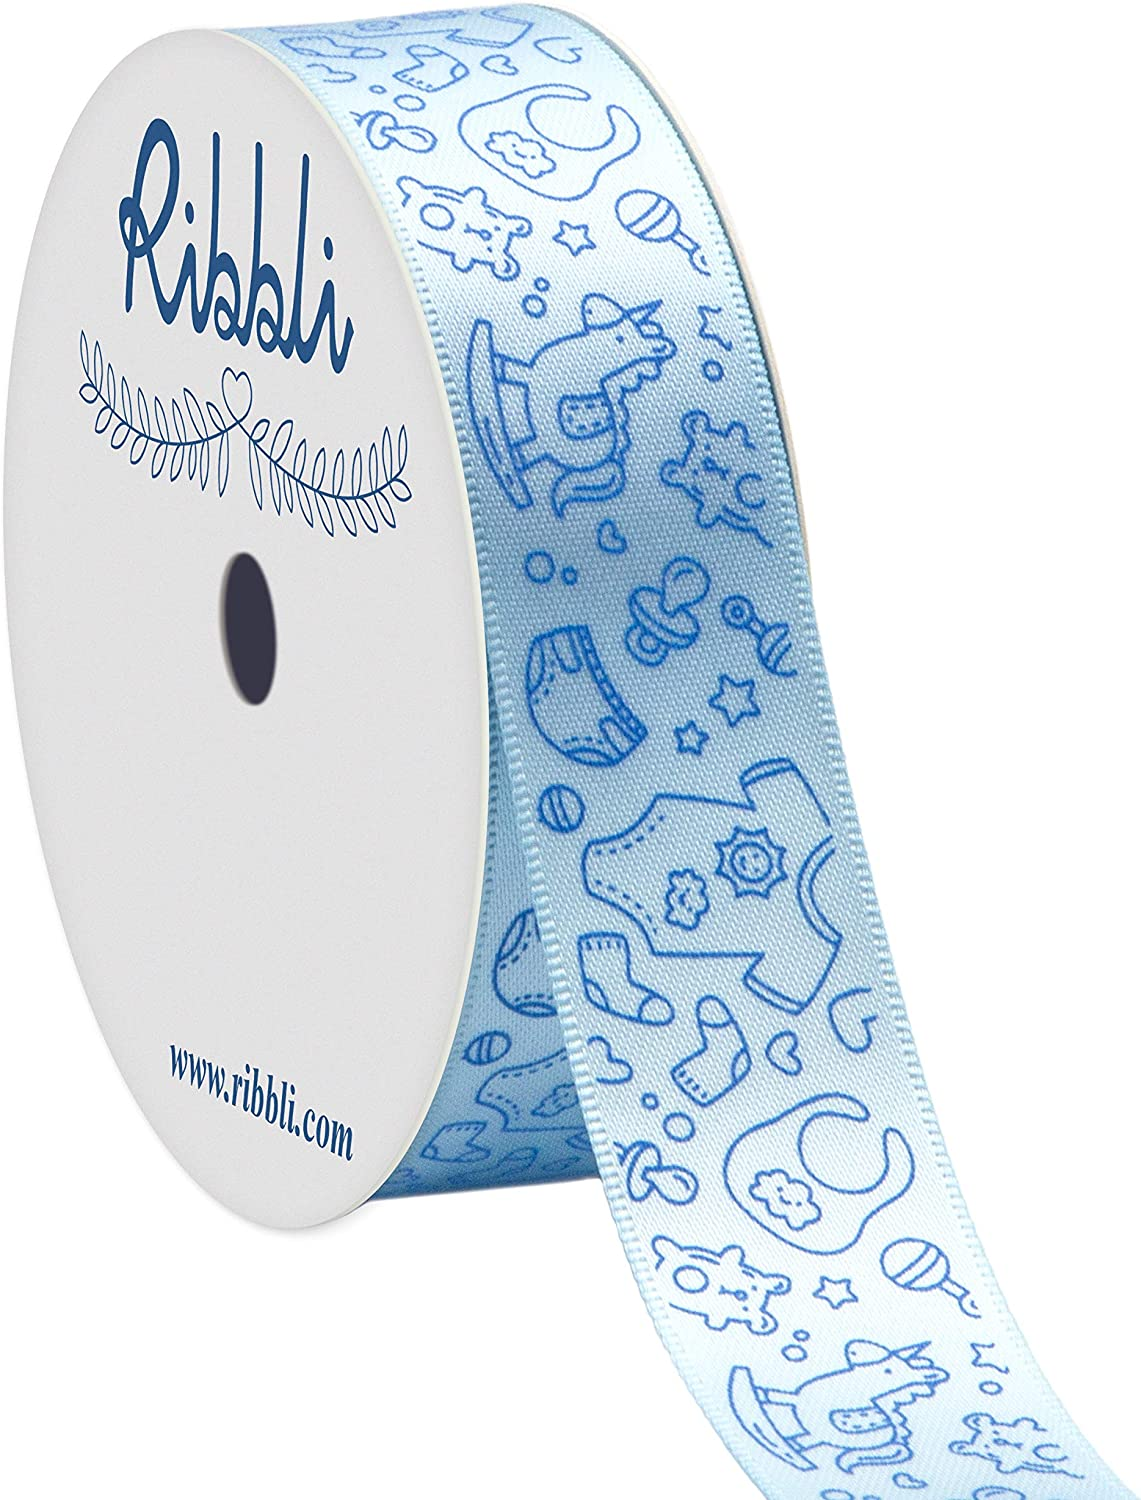 Ribbli Satin Blue Baby Craft Ribbon,7/8-Inch x 10-Yard,Light Blue,Use for Hair Bows,Wreath,Birthday,Baby Shower,Diaper Cake,Gift Wrapping,Party Decoration,All Crafting and Sewing